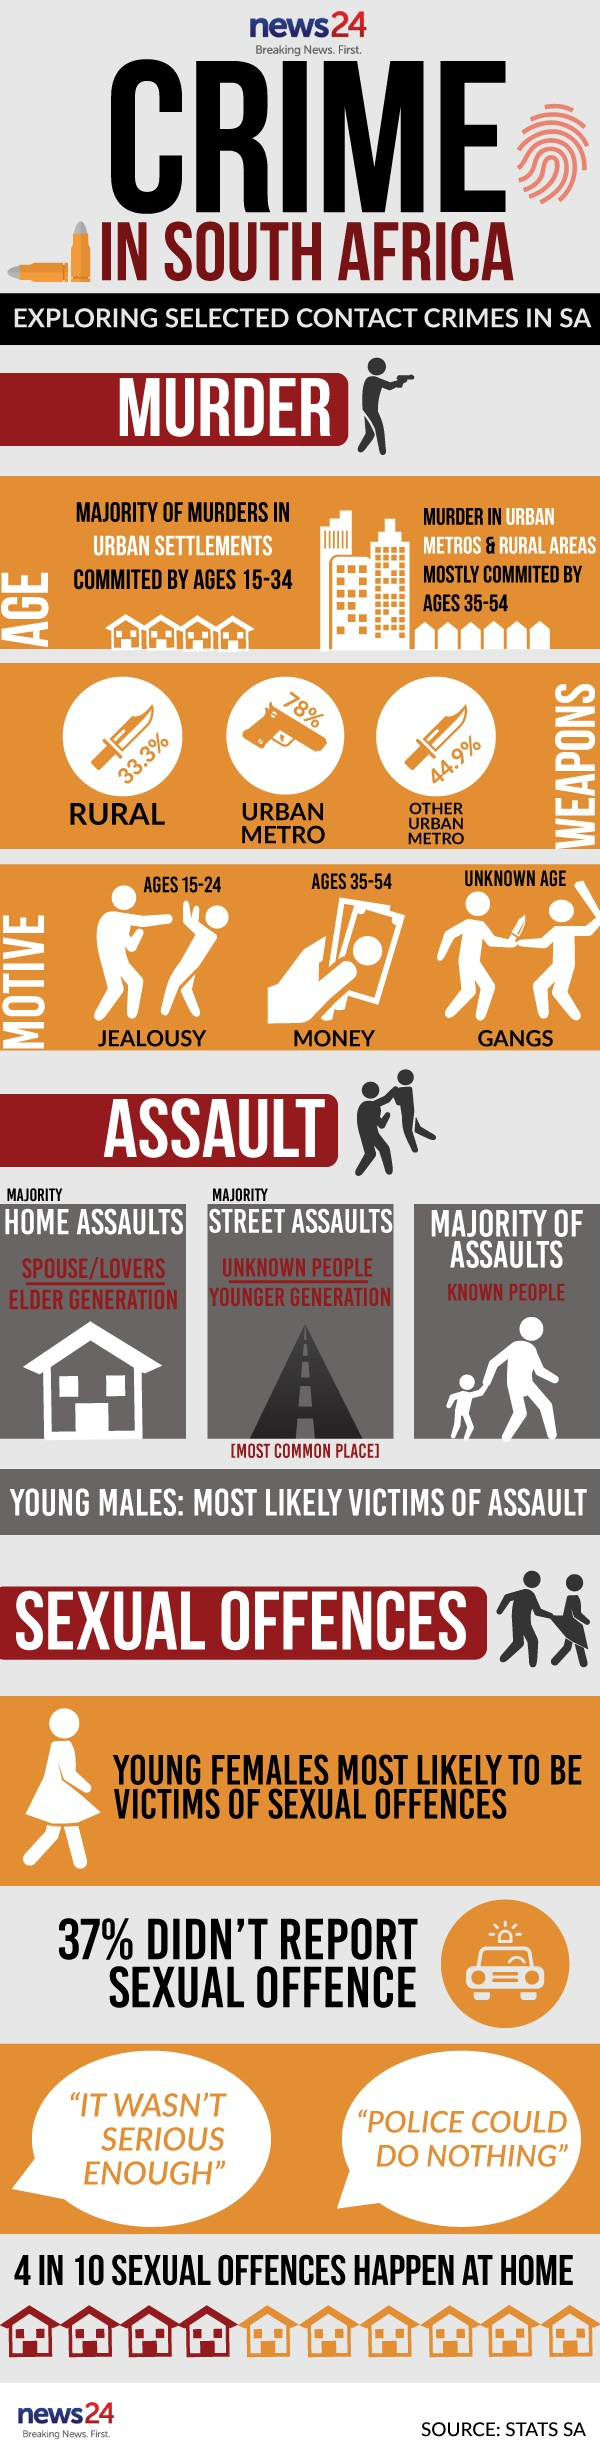 crime-stats-south-africa-infographic